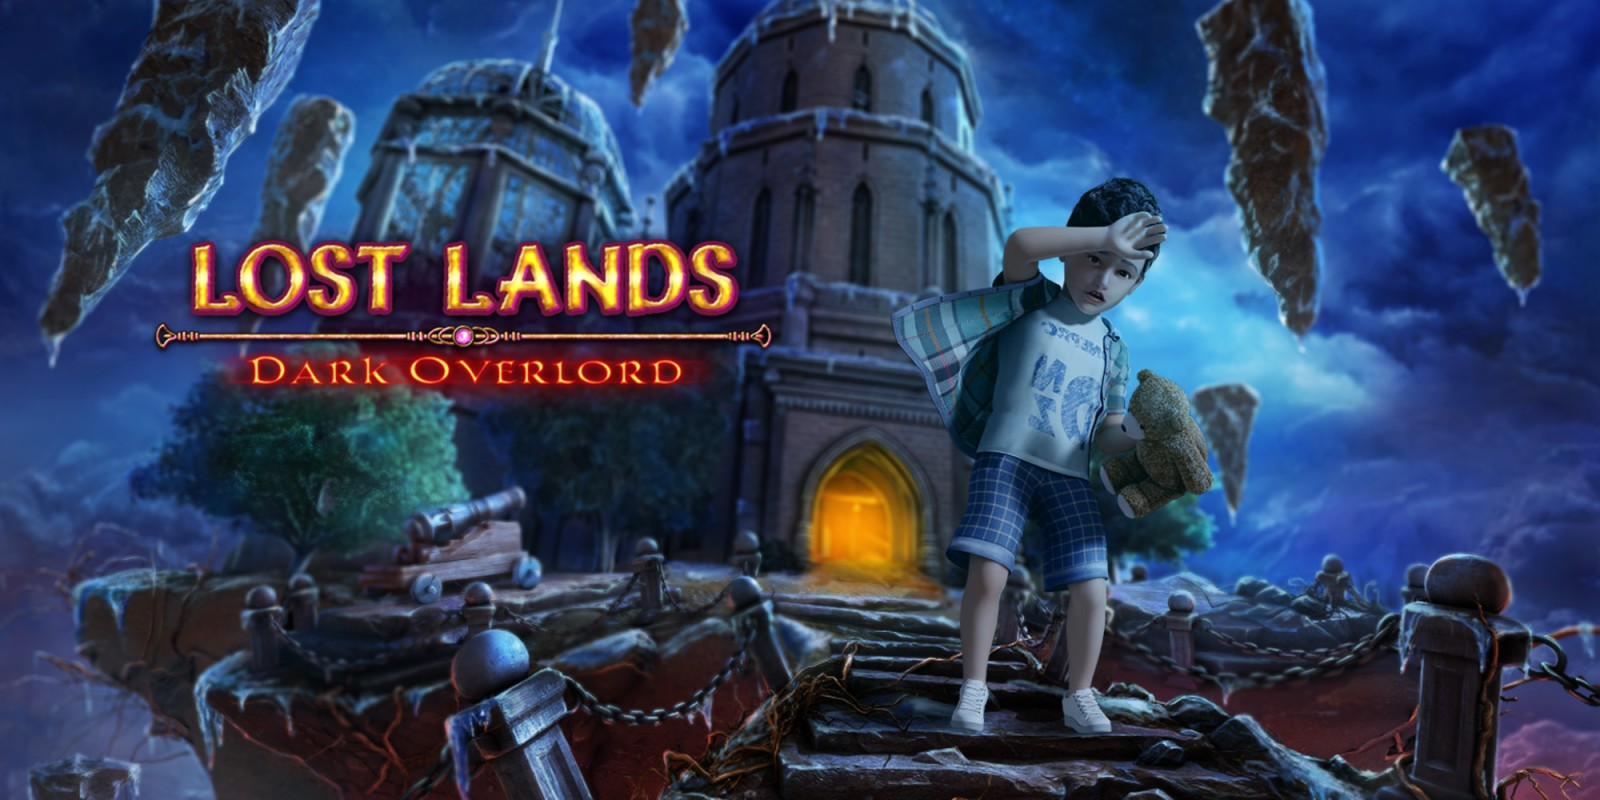 Lost Lands: Dark Overlord (free to play)